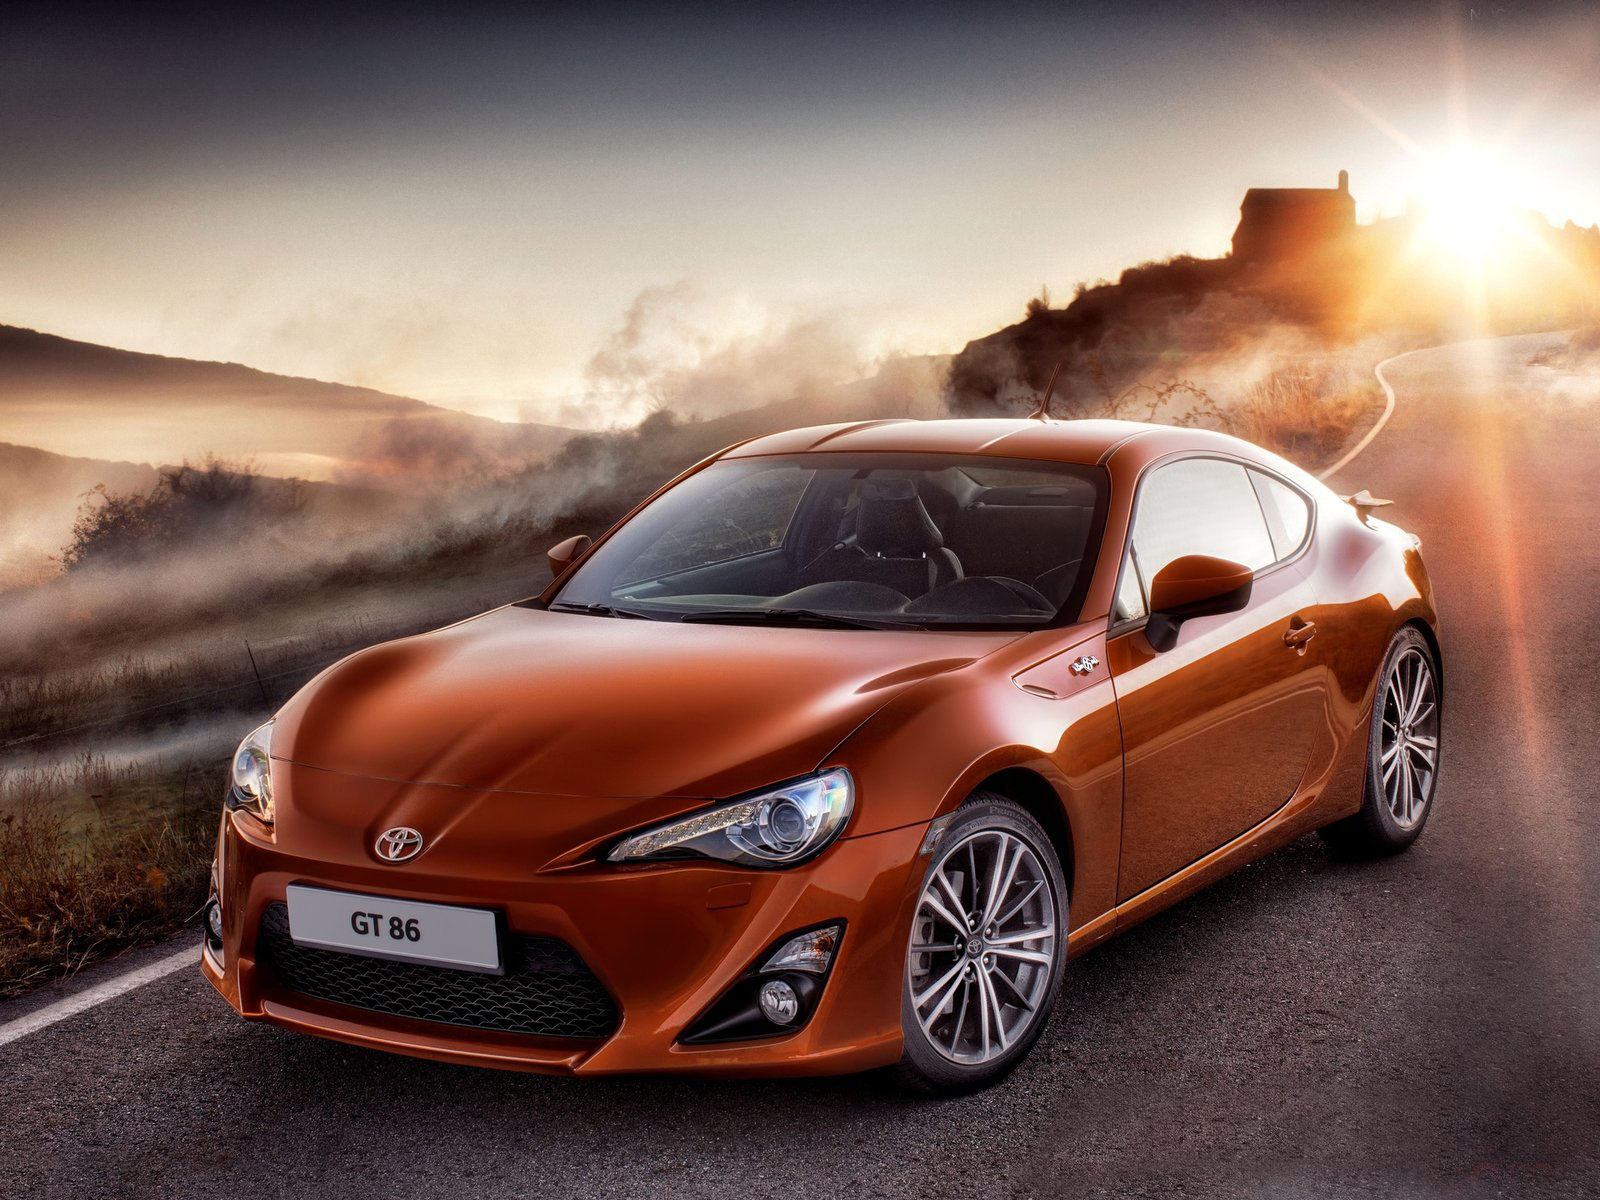 2013 TOYOTA GT 86 Car Pictures, Review